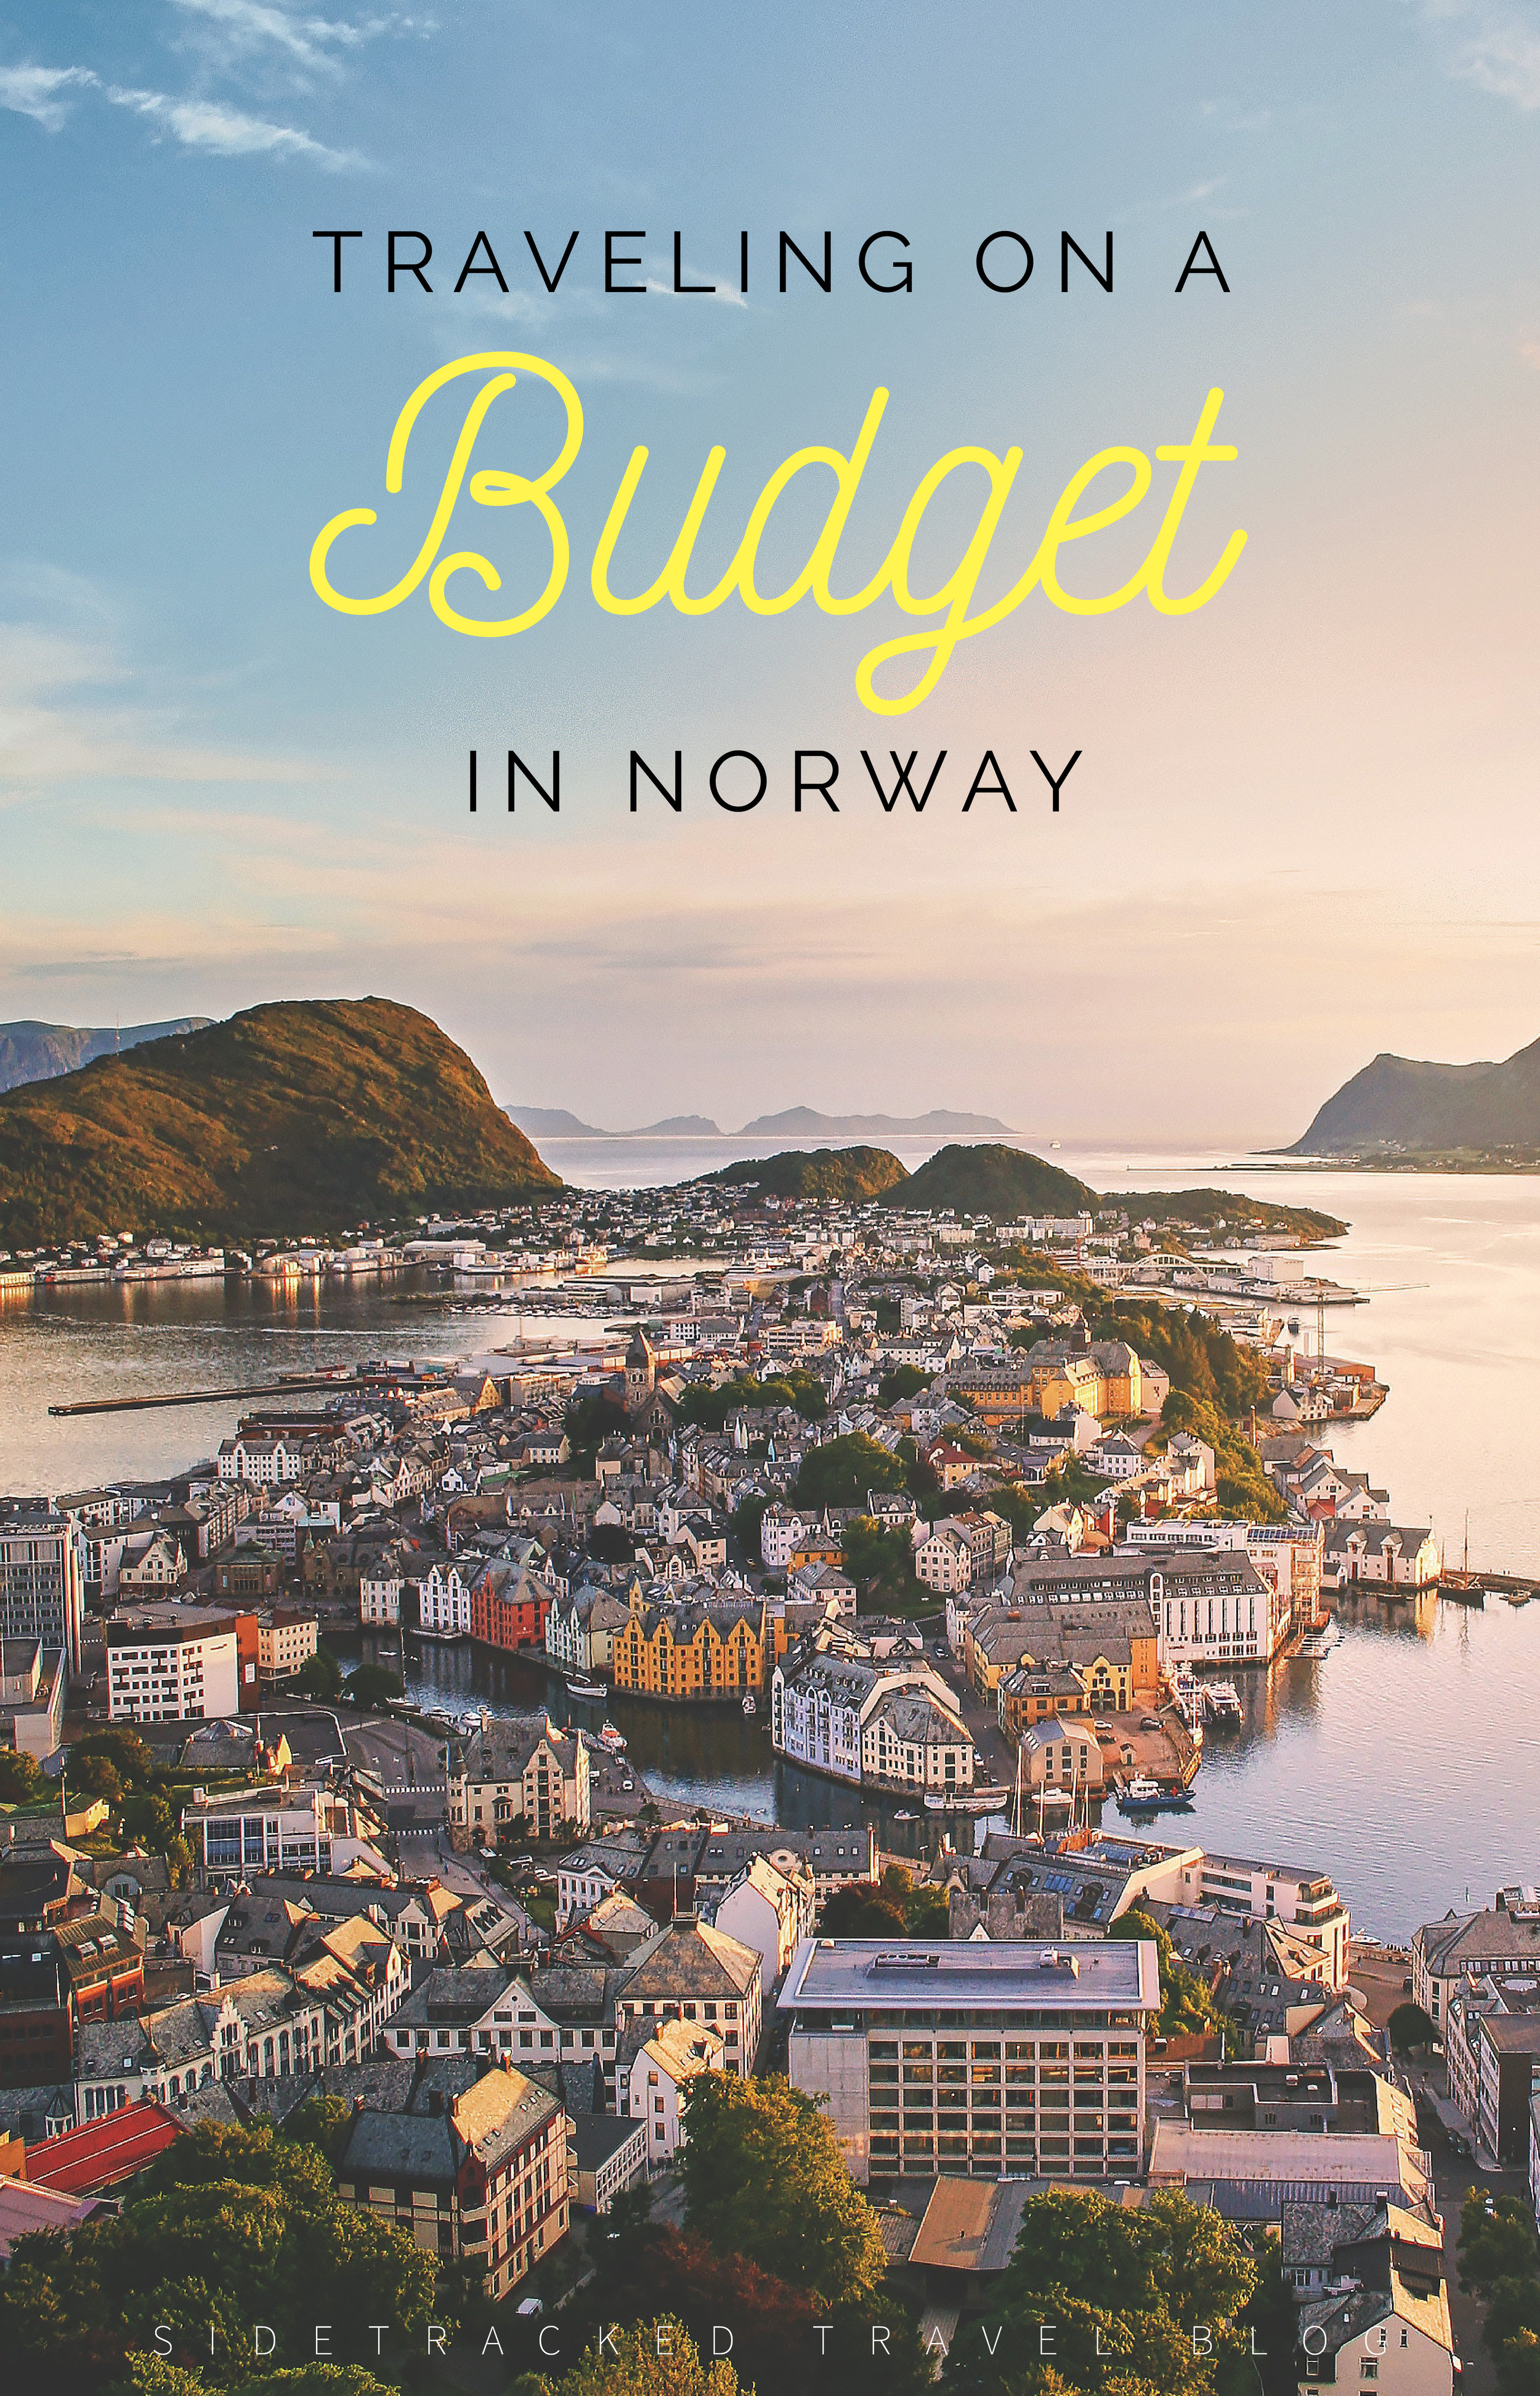 There's one thing that can often catch the unsuspecting traveler off guard: just  how  expensive Norway can be.However, with a few handy tips it's entirely possible to fully experience Norway without breaking the bank.